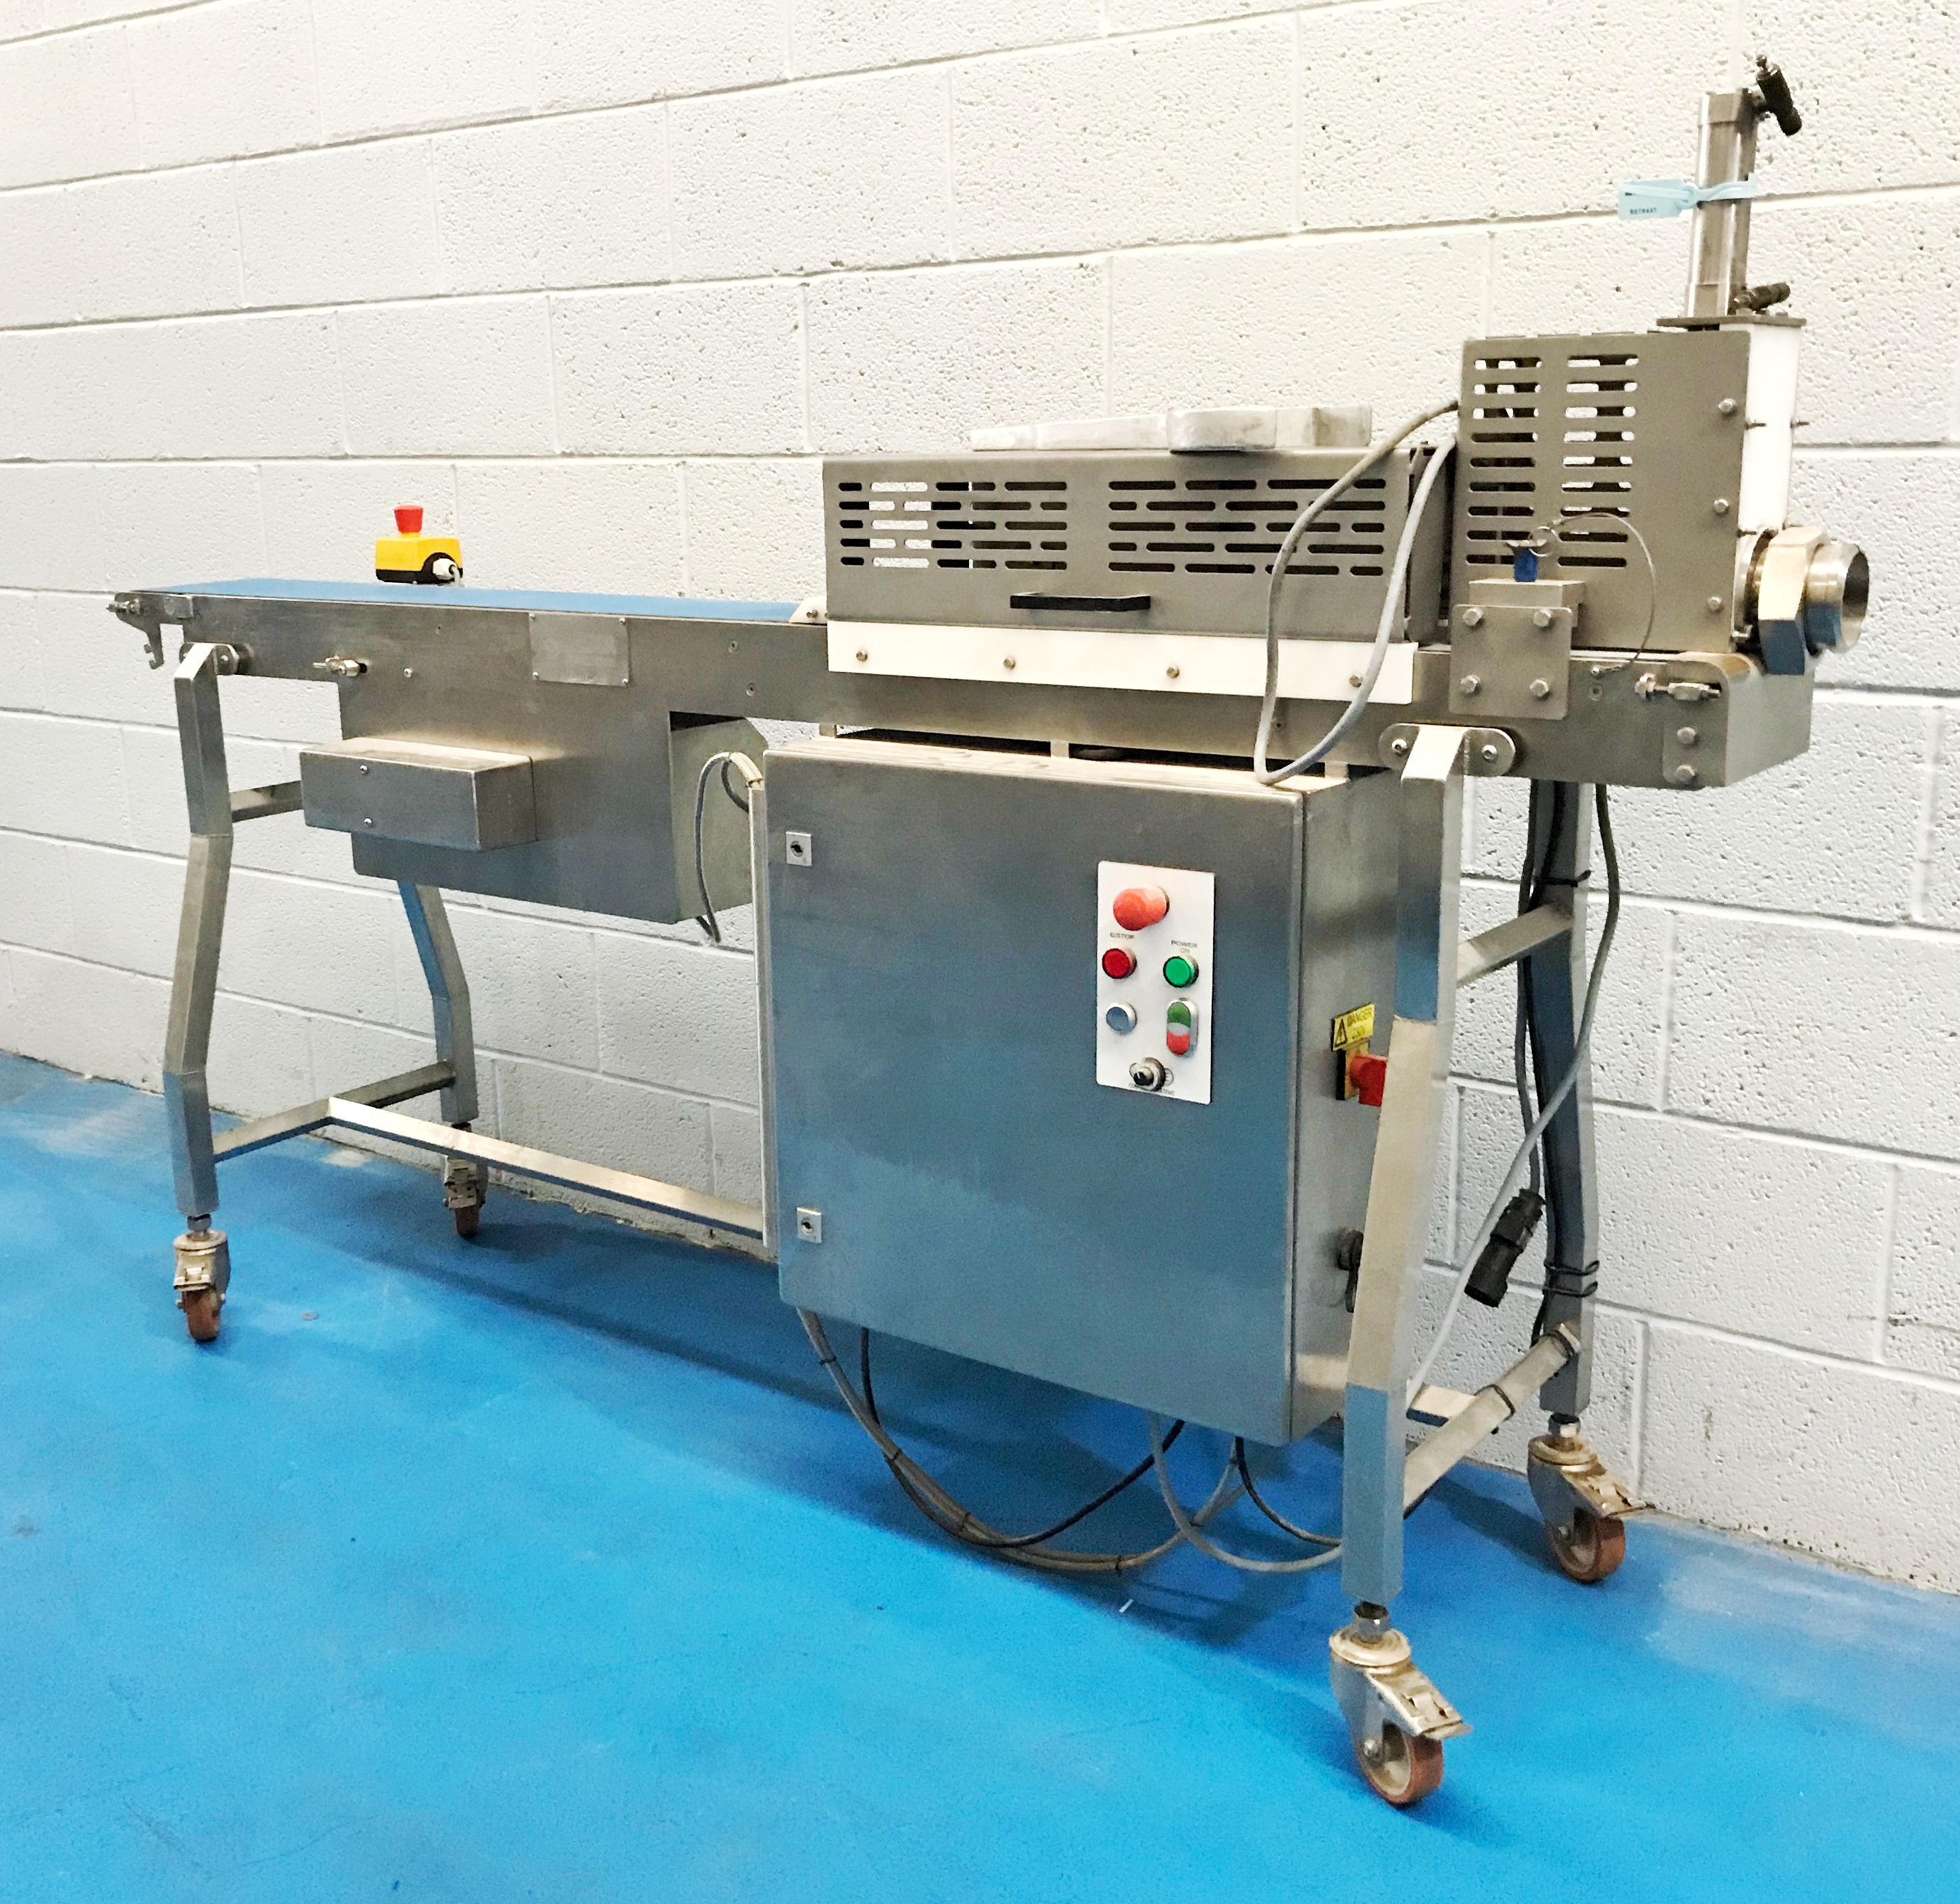 VEMAG GUILLOTINE AND OUTFEED CONVEYOR FOR R500, 2014